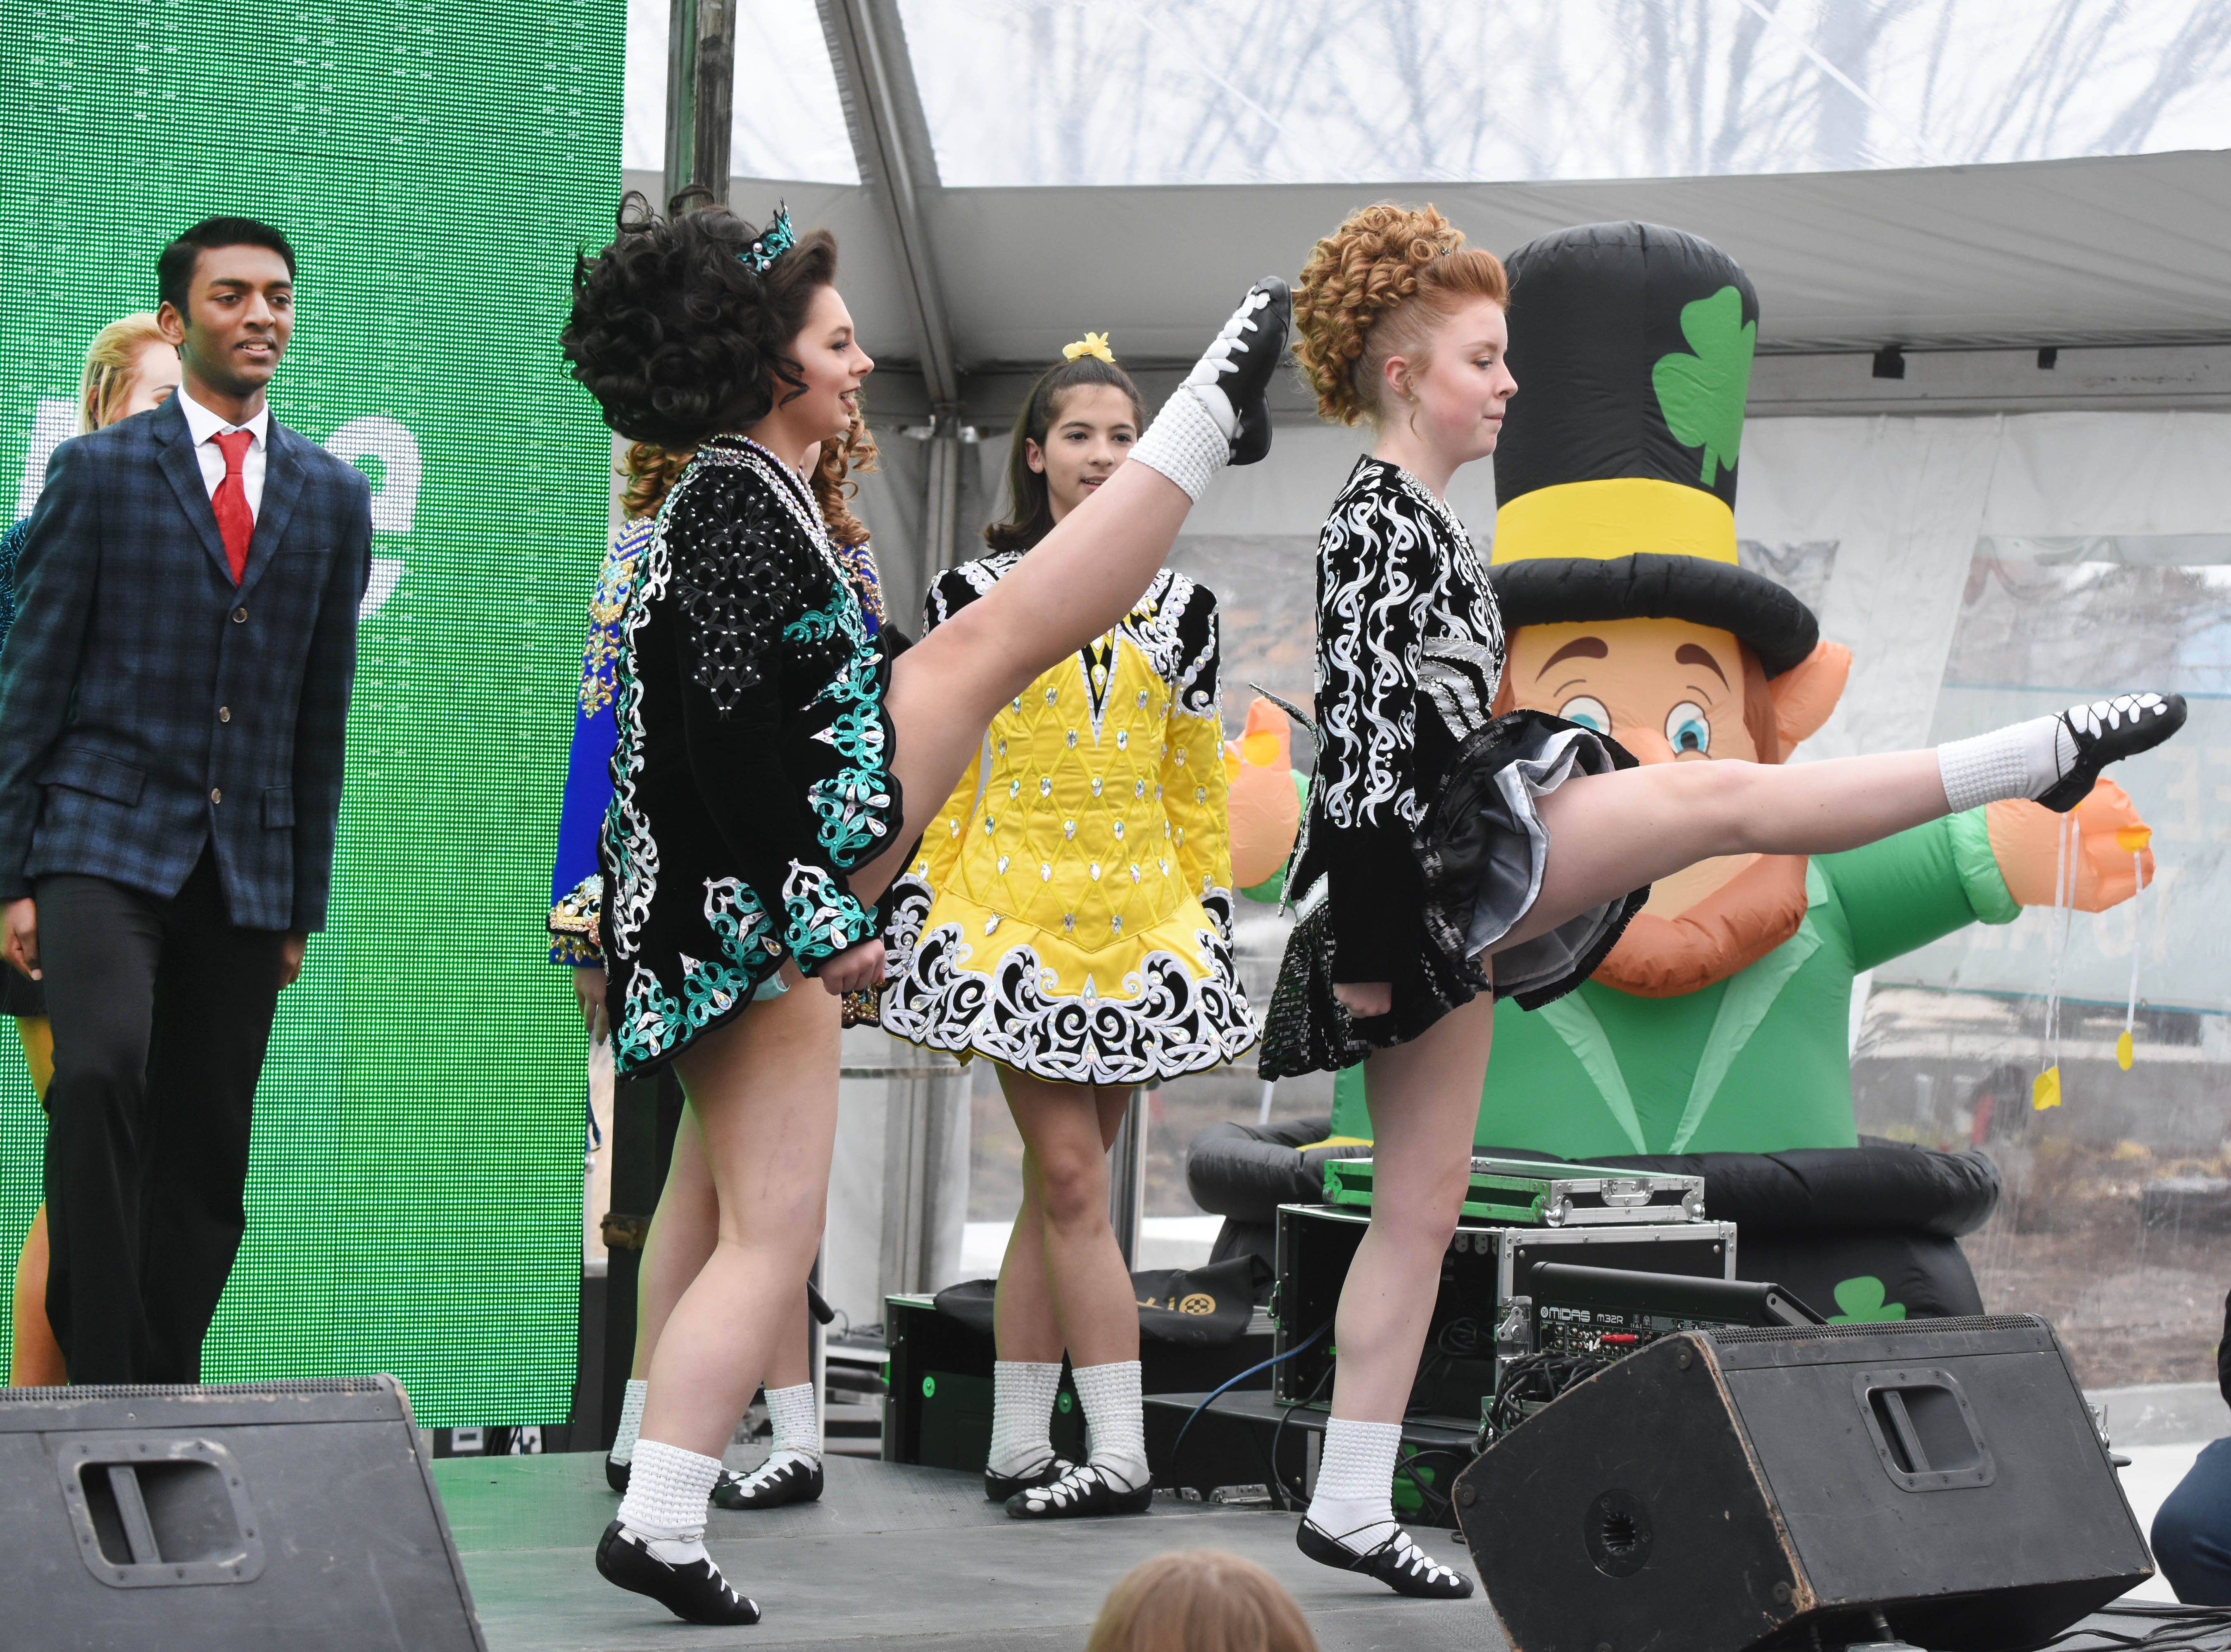 Members of the Tim O'Hare Irish Dance group perform during the St. Patrick's Day Party.